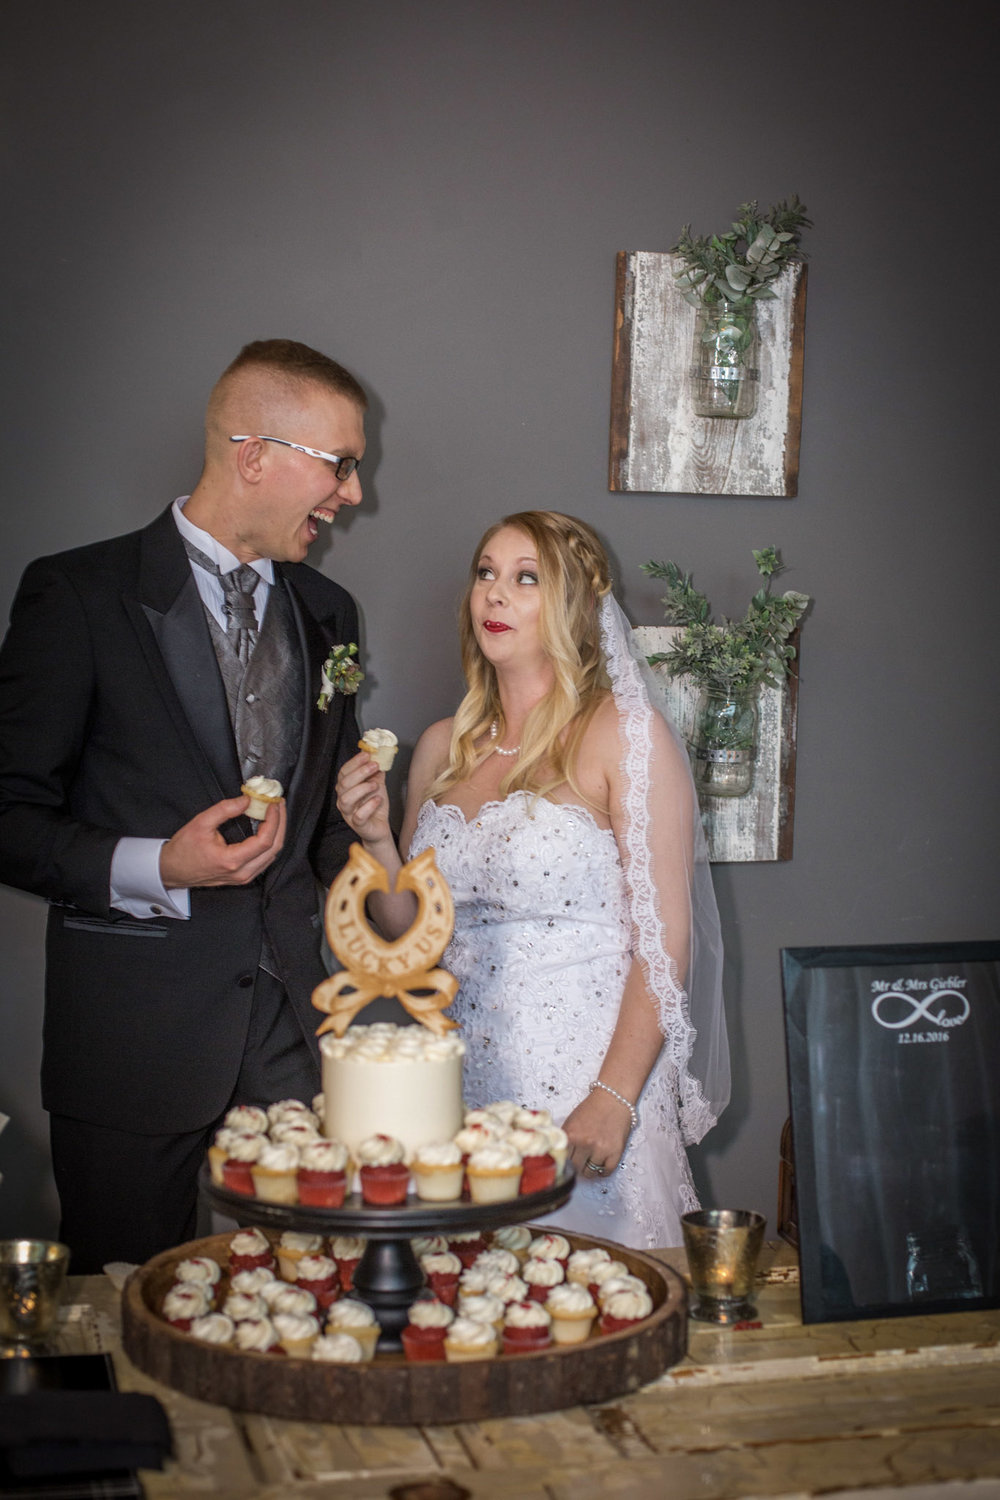 Kansas_City_Small_Intimate_Budget_Wedding_Venue_Maranda&Neal-056.jpg